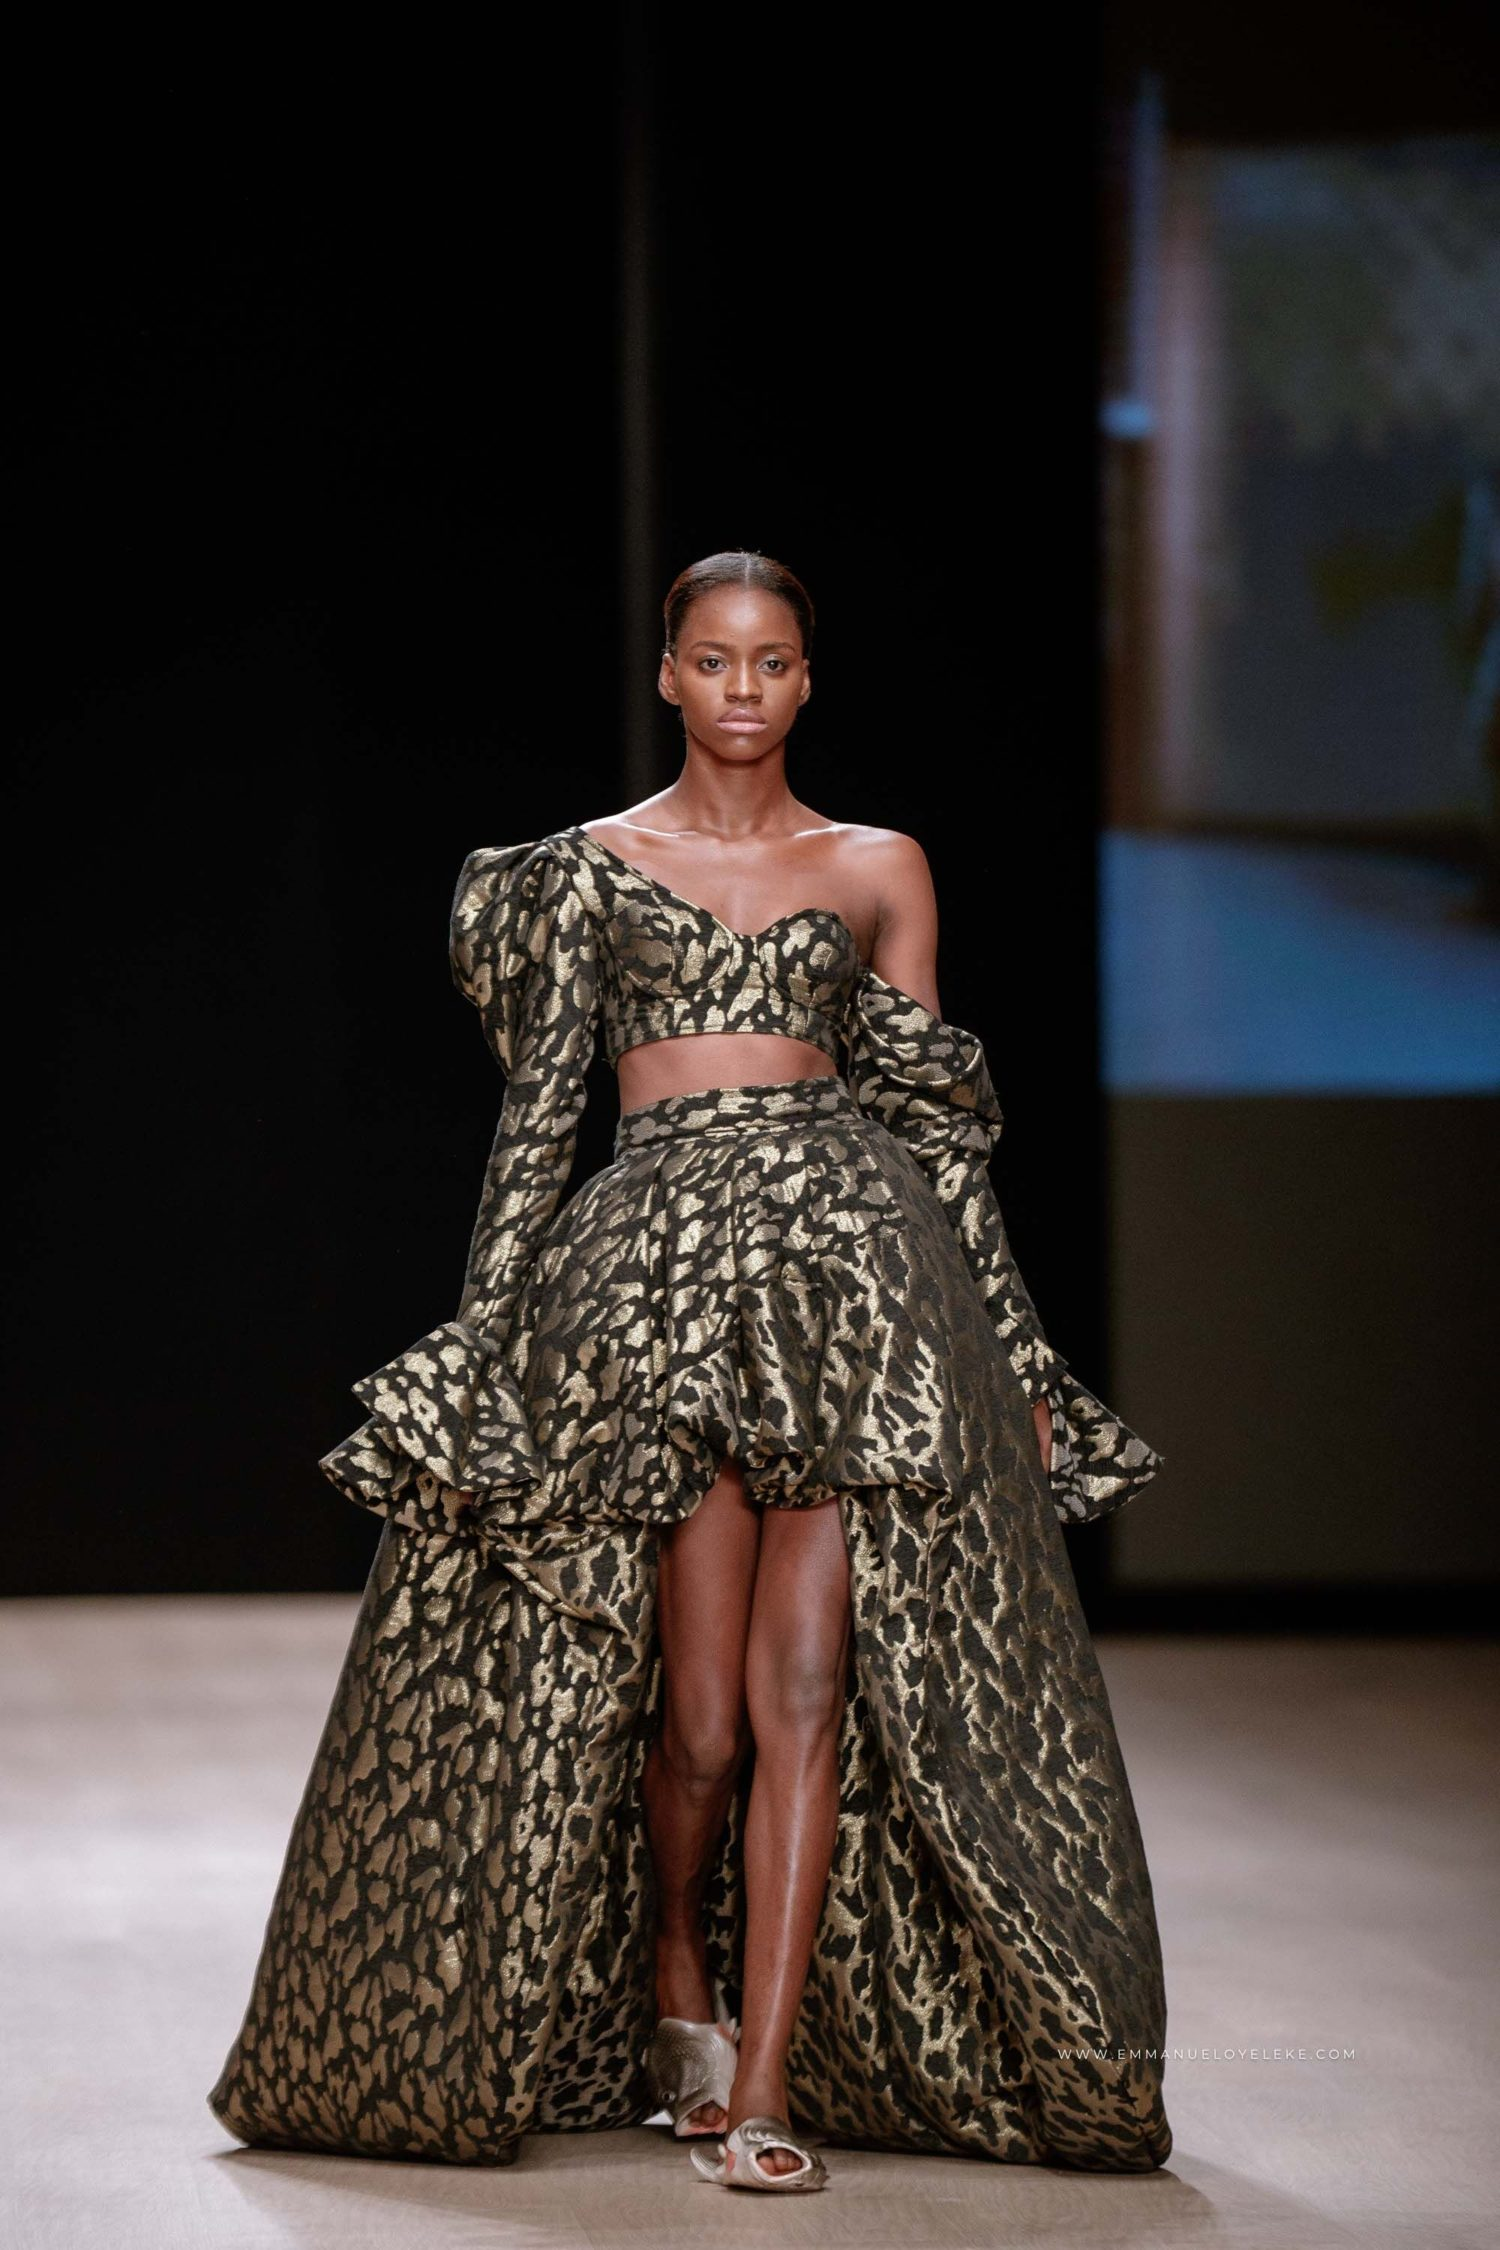 ARISE Fashion Week 2019 | Selam Fessahaye